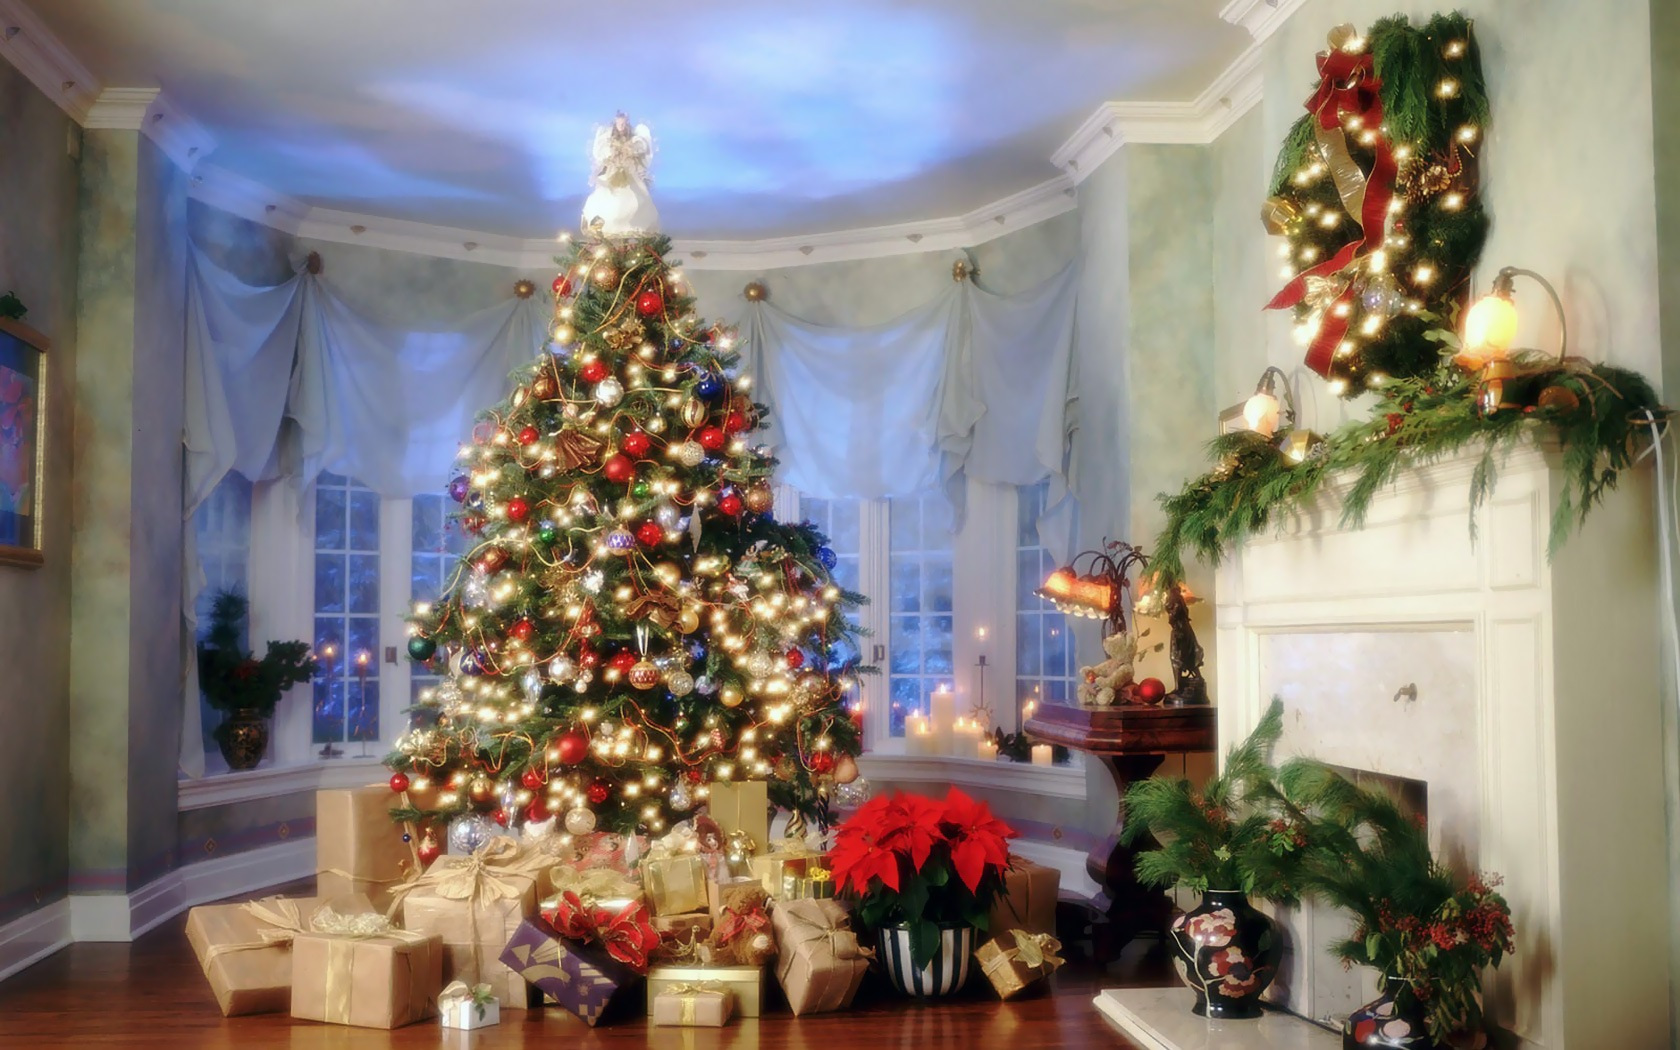 A beautiful Christmas tree with gifts